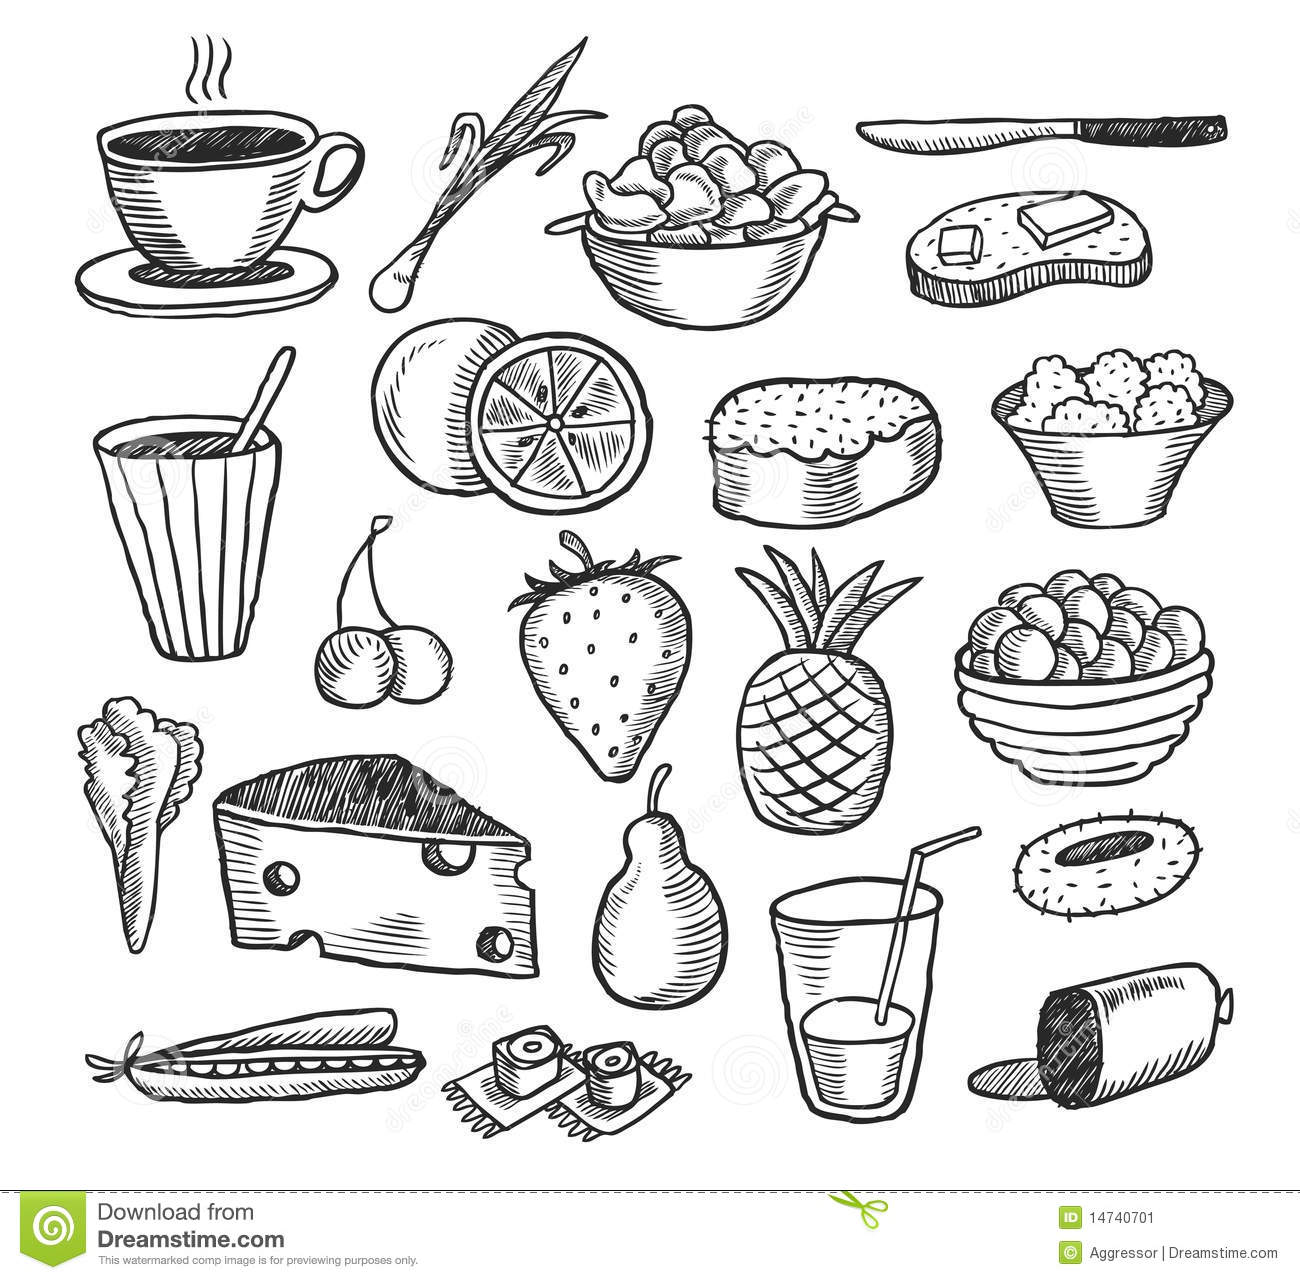 Junk food coloring pages - Food Doodles Stock Image Image 14740701